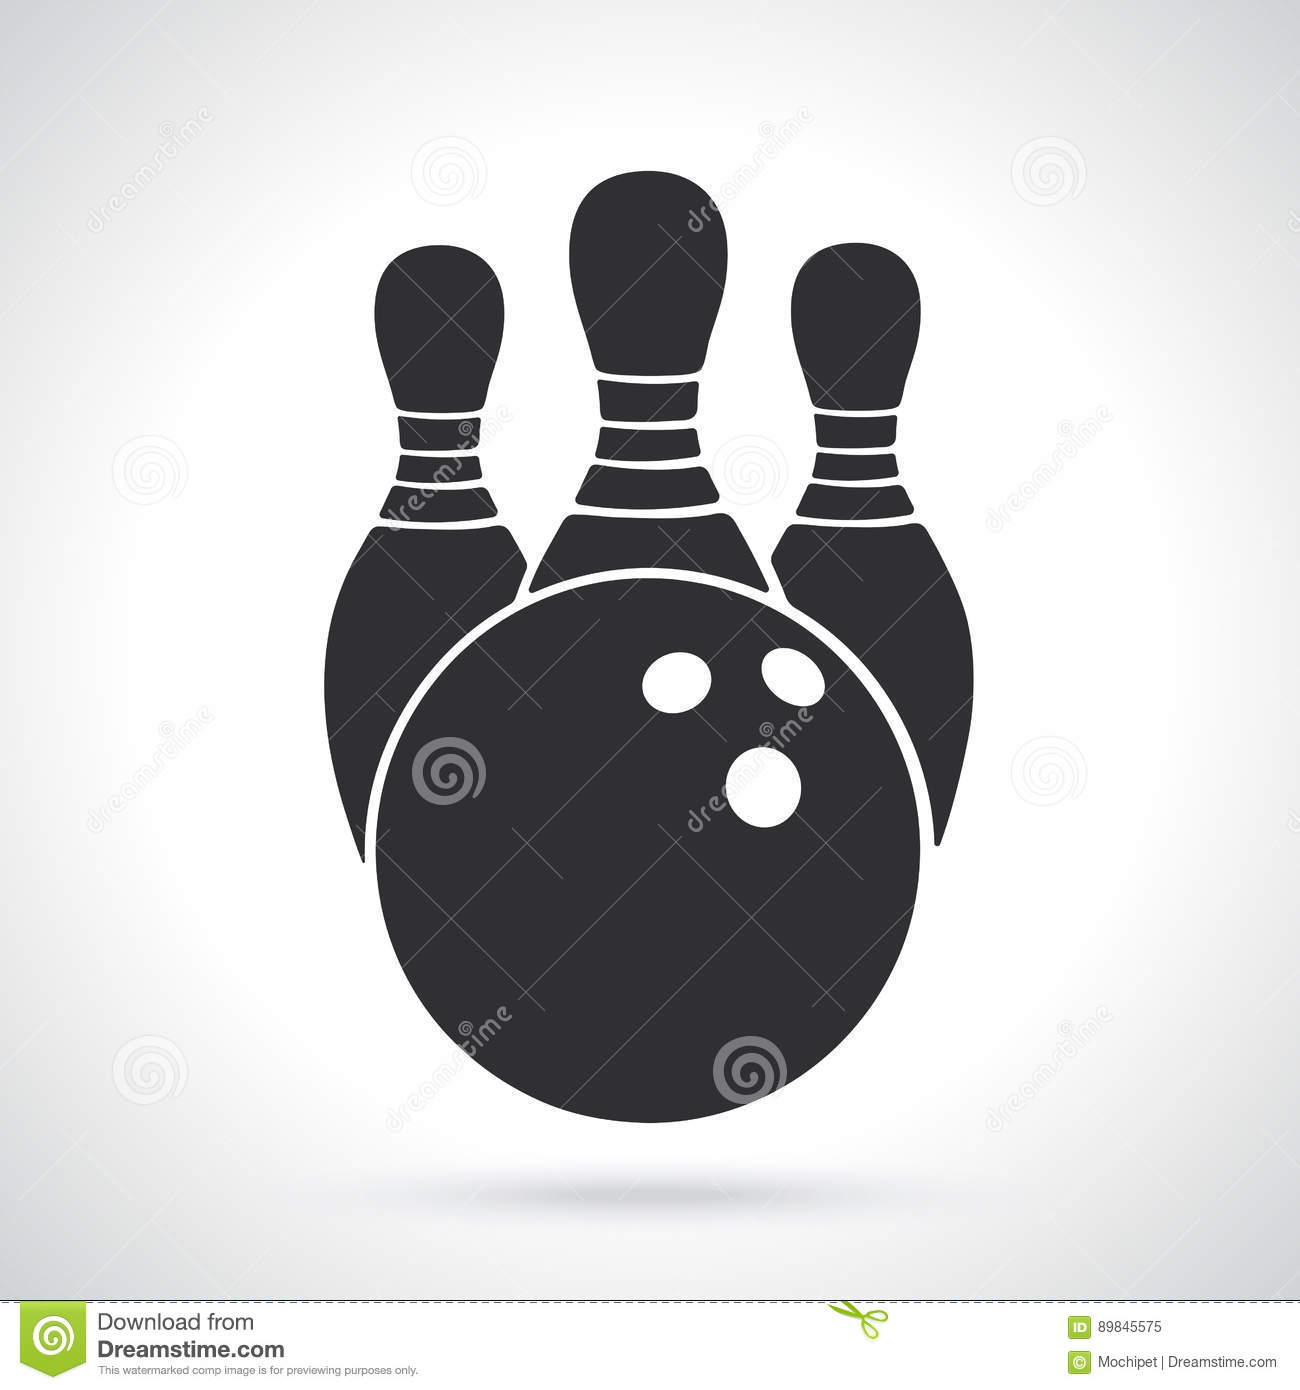 silhouette of bowling ball and pins stock vector illustration of